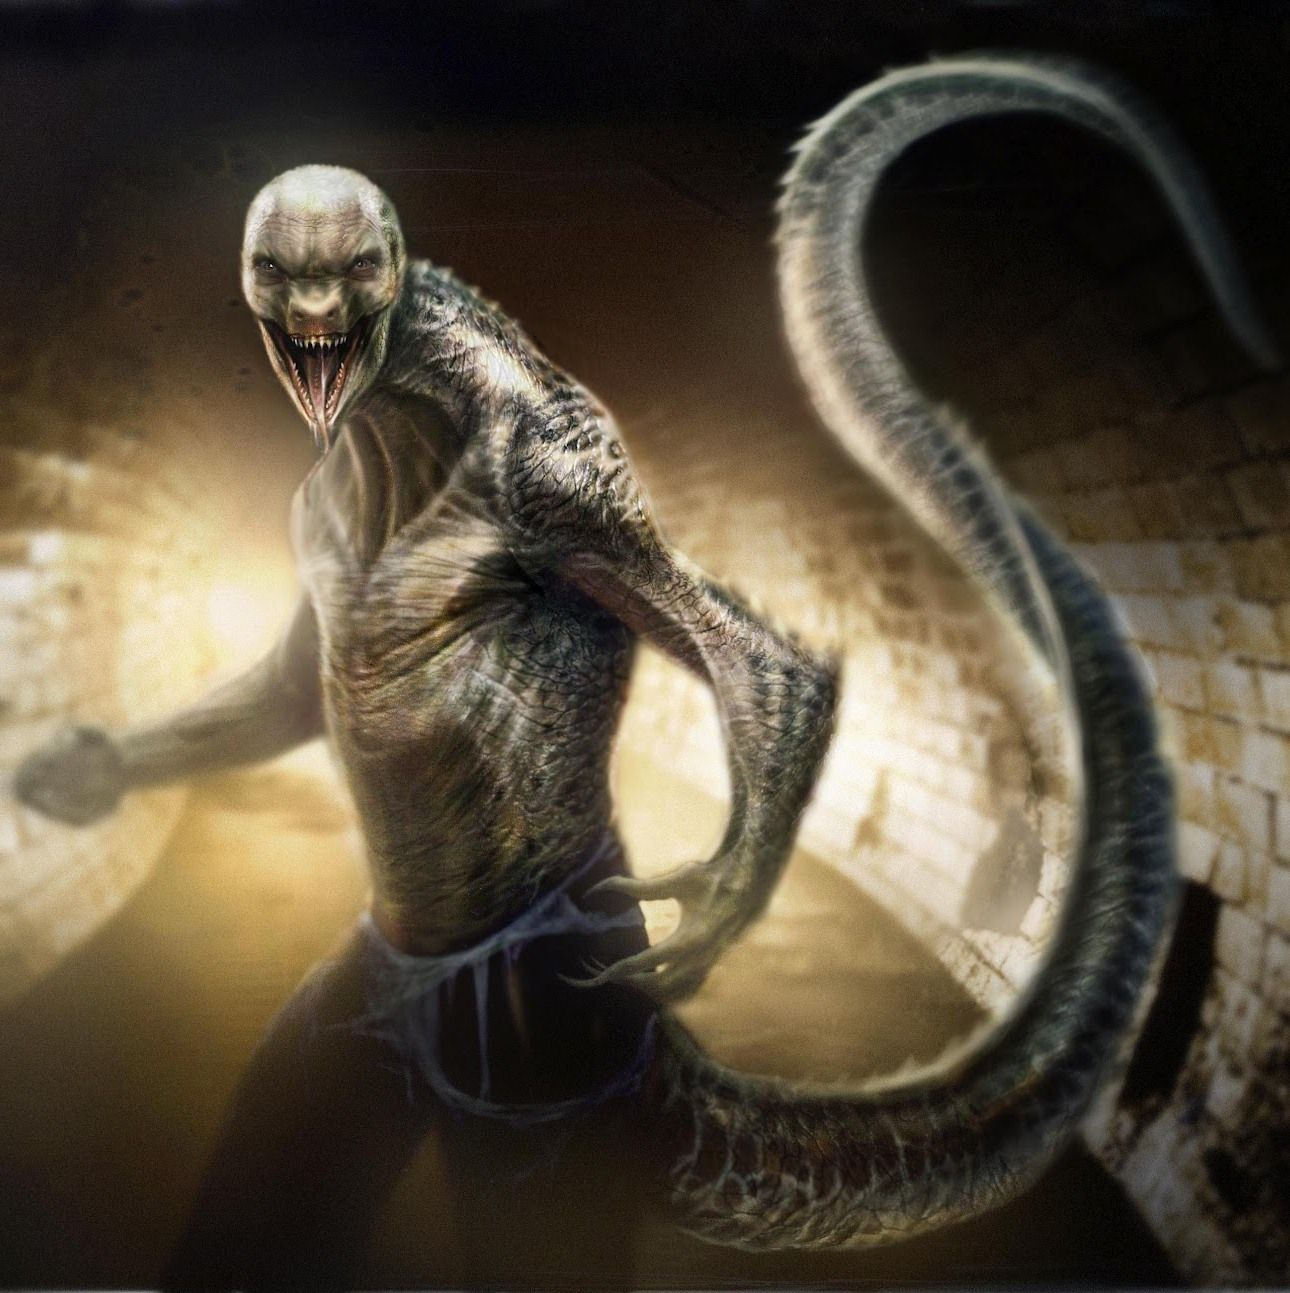 Lizard concept art k Spider-Man 2